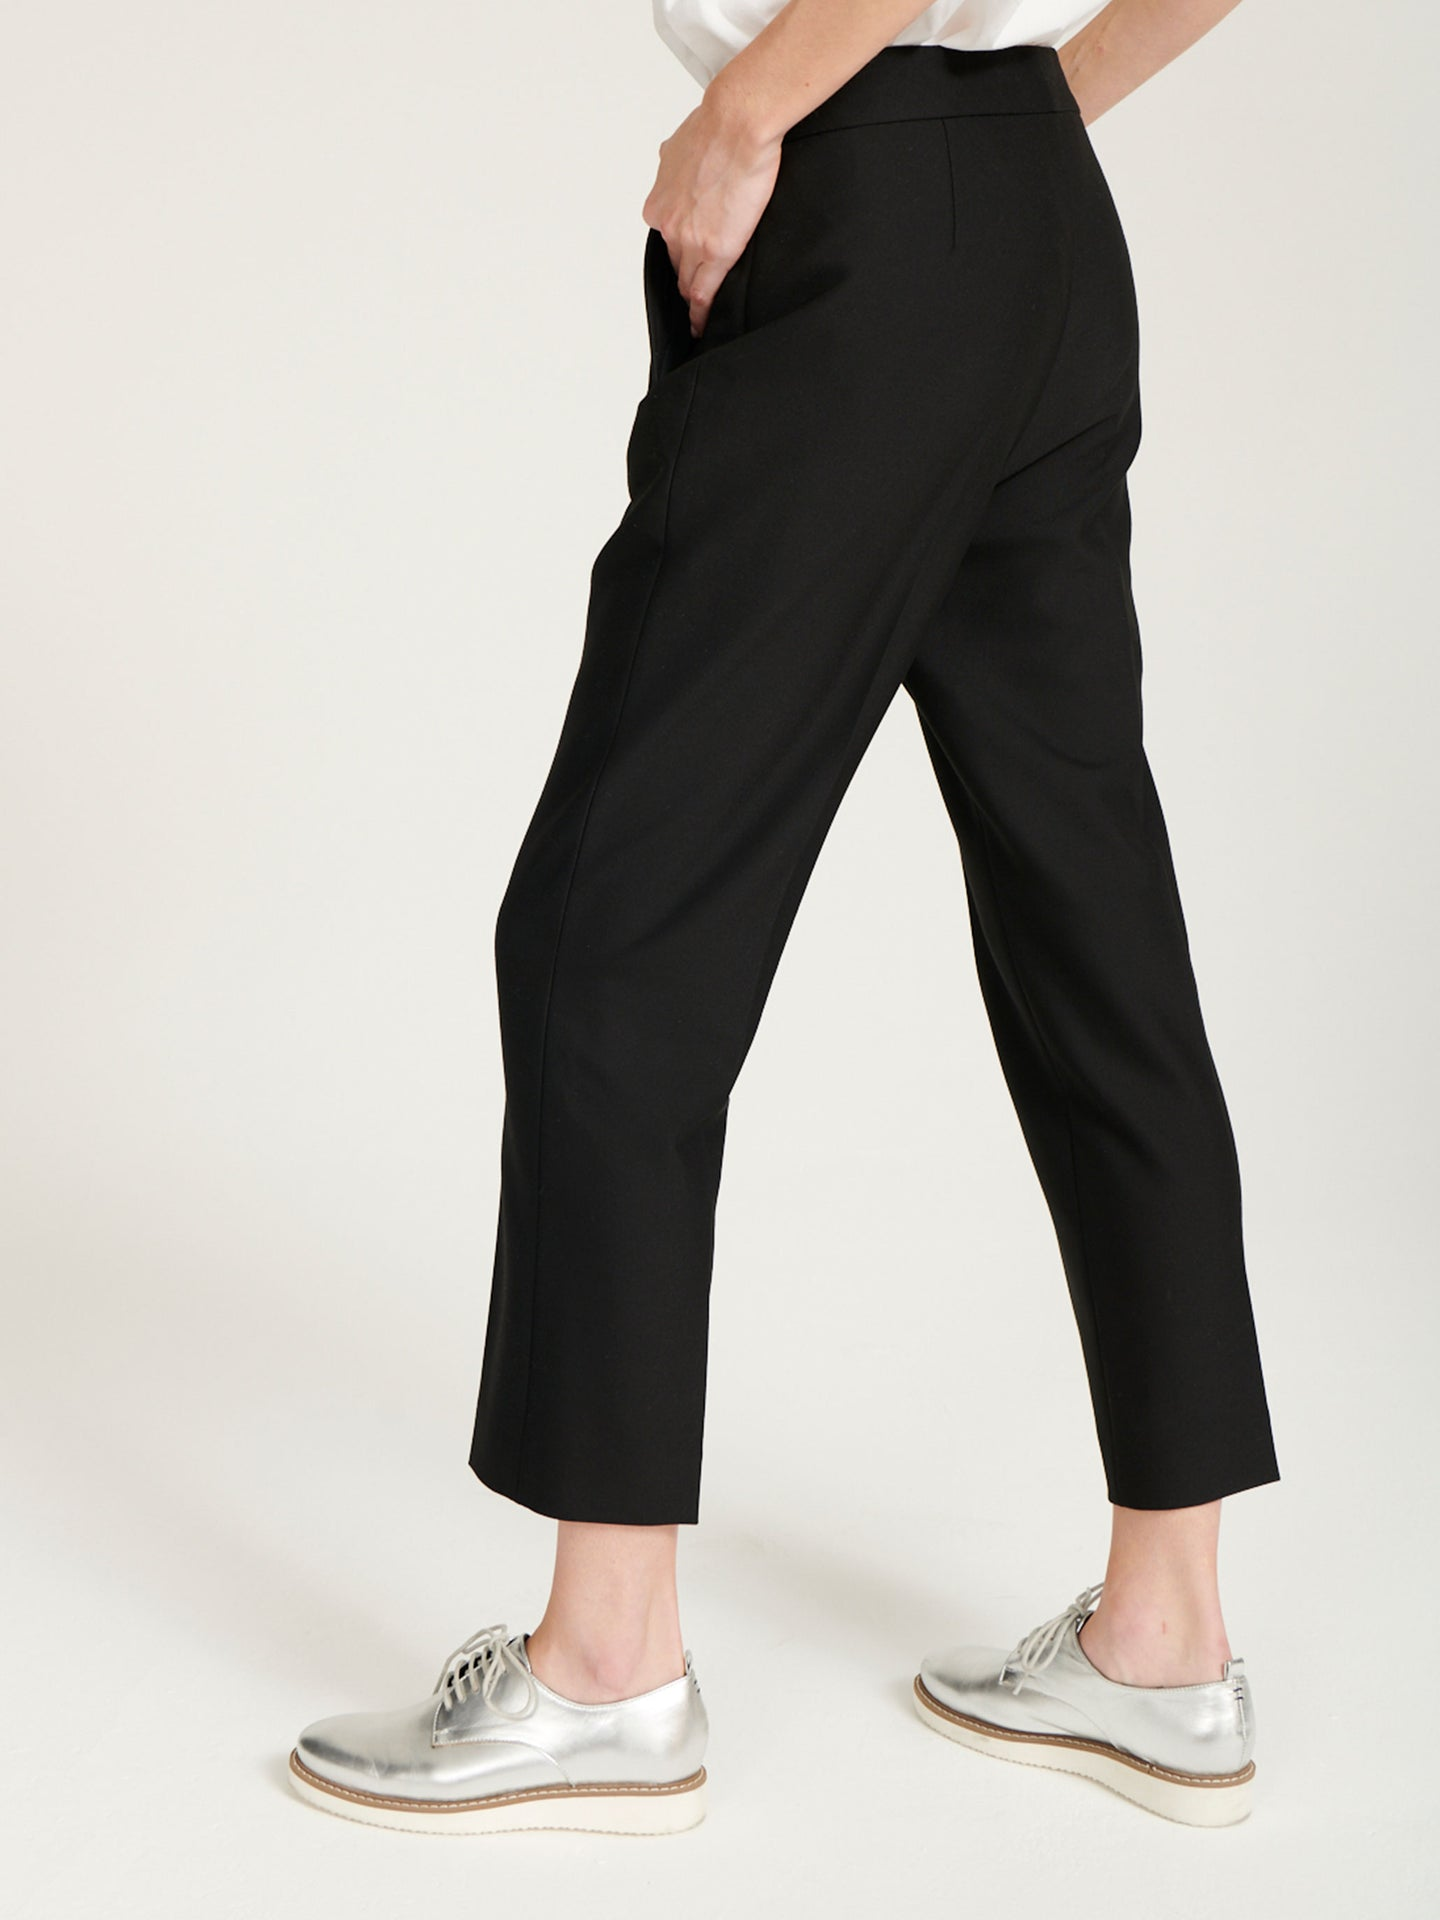 Mandy tapered trouser